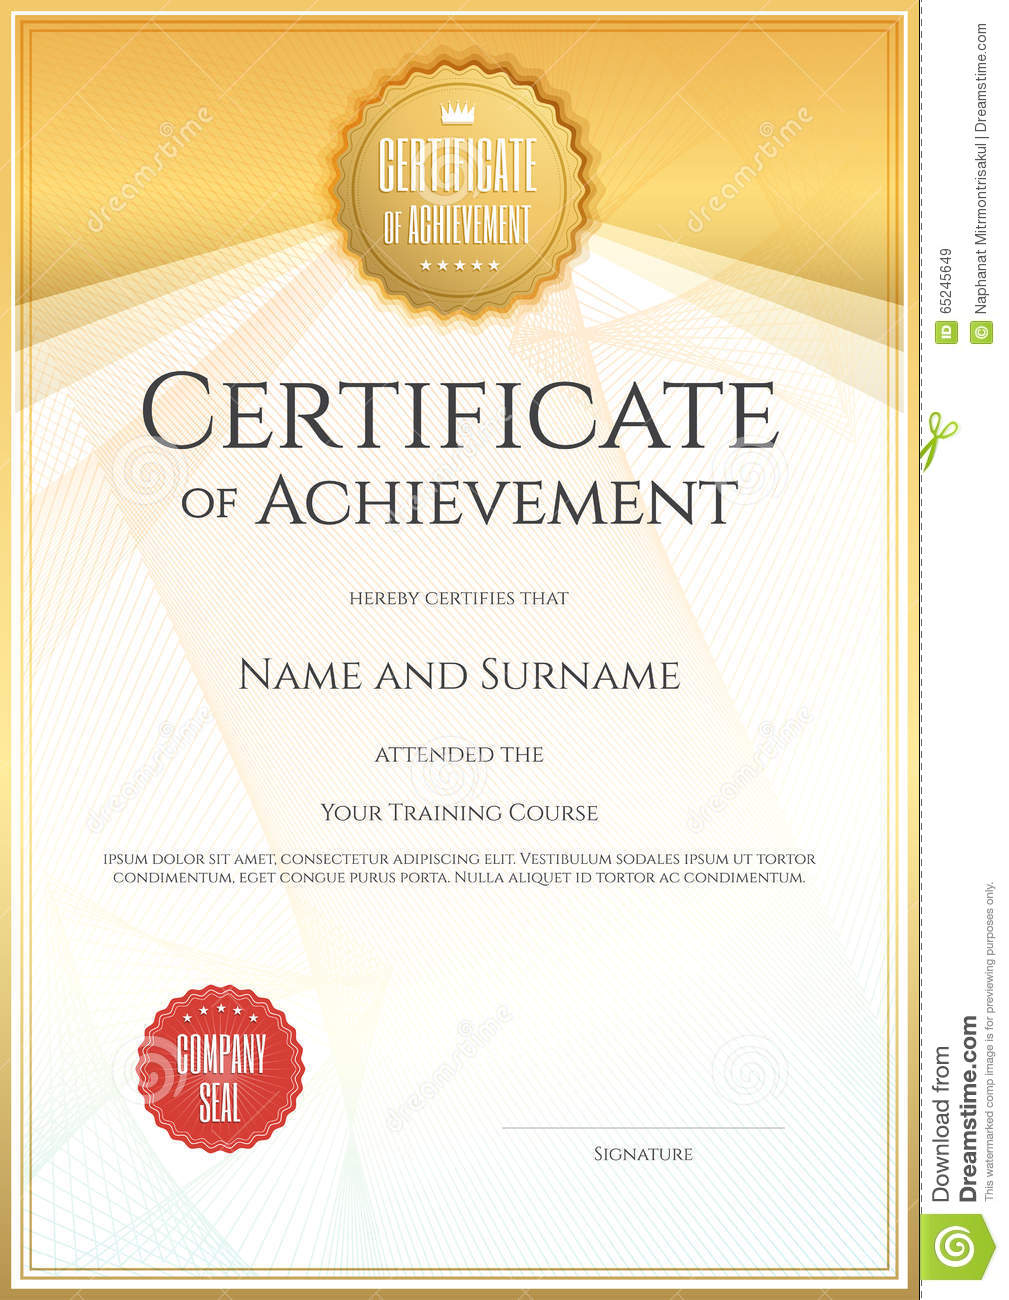 Certificate template in vector for achievement graduation comple certificate template in vector for achievement graduation comple xflitez Images